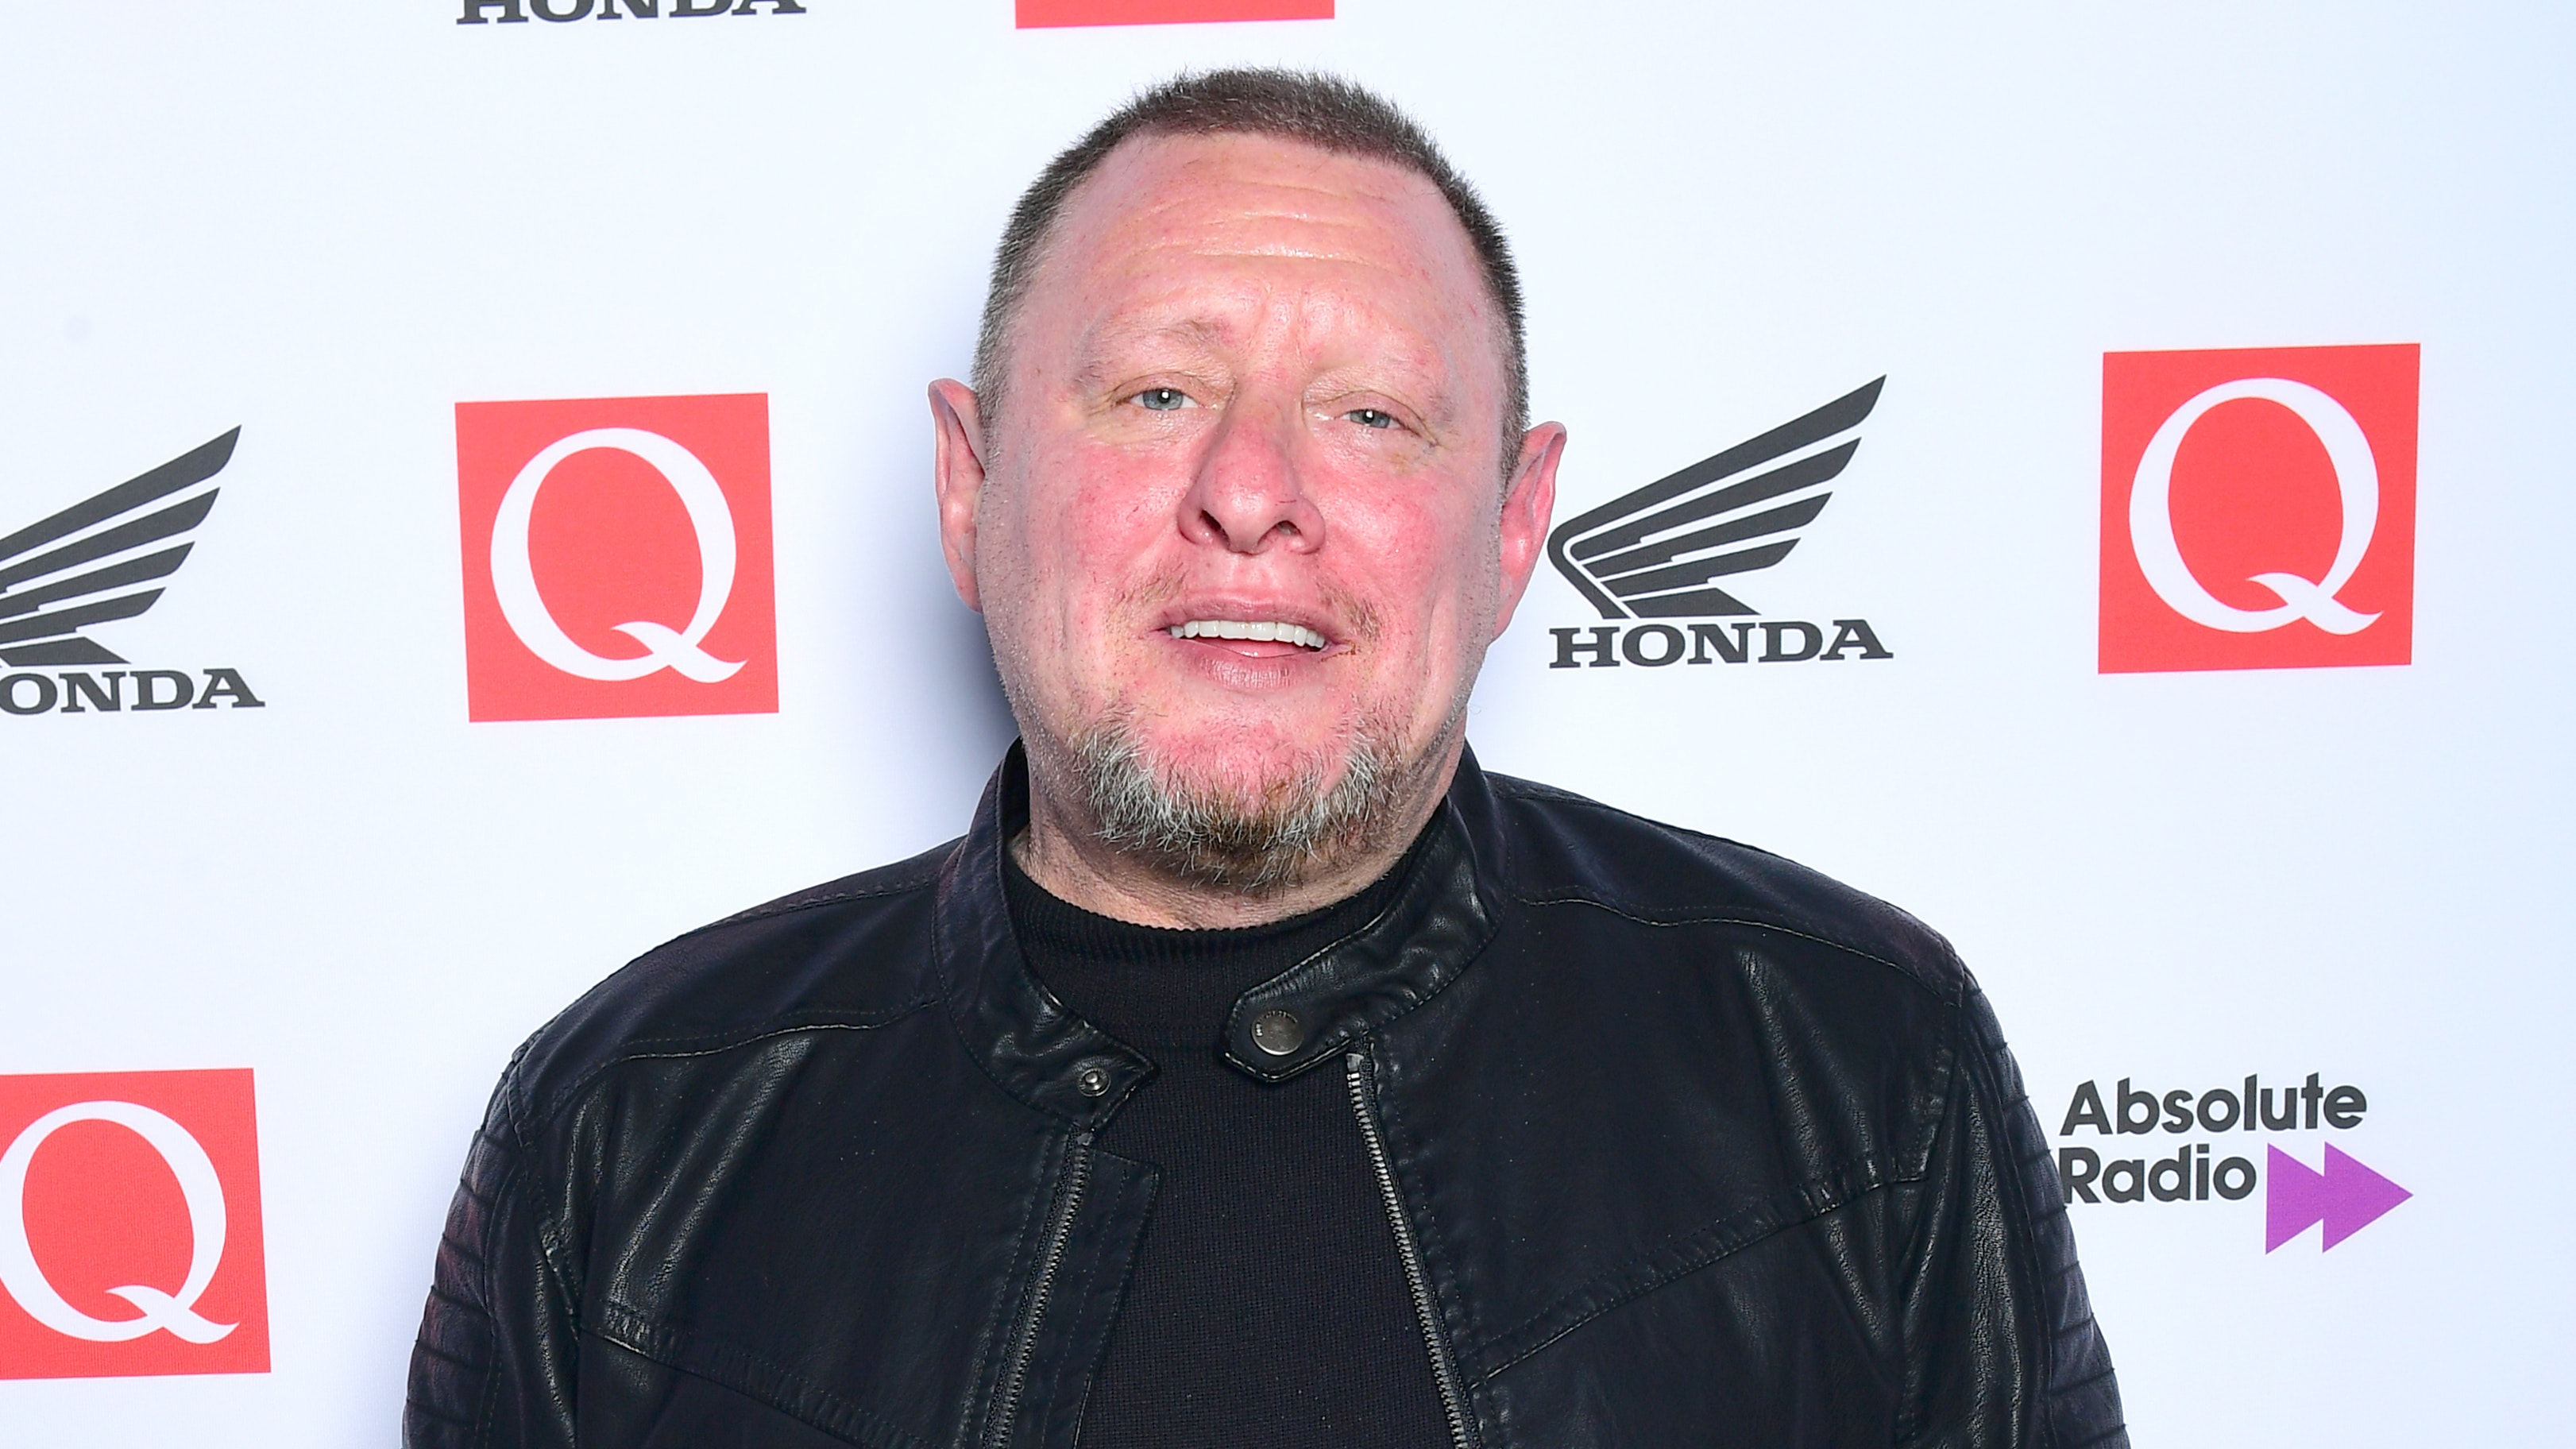 Shaun Ryder created alter-ego X to deal with crippling stage fright   BT